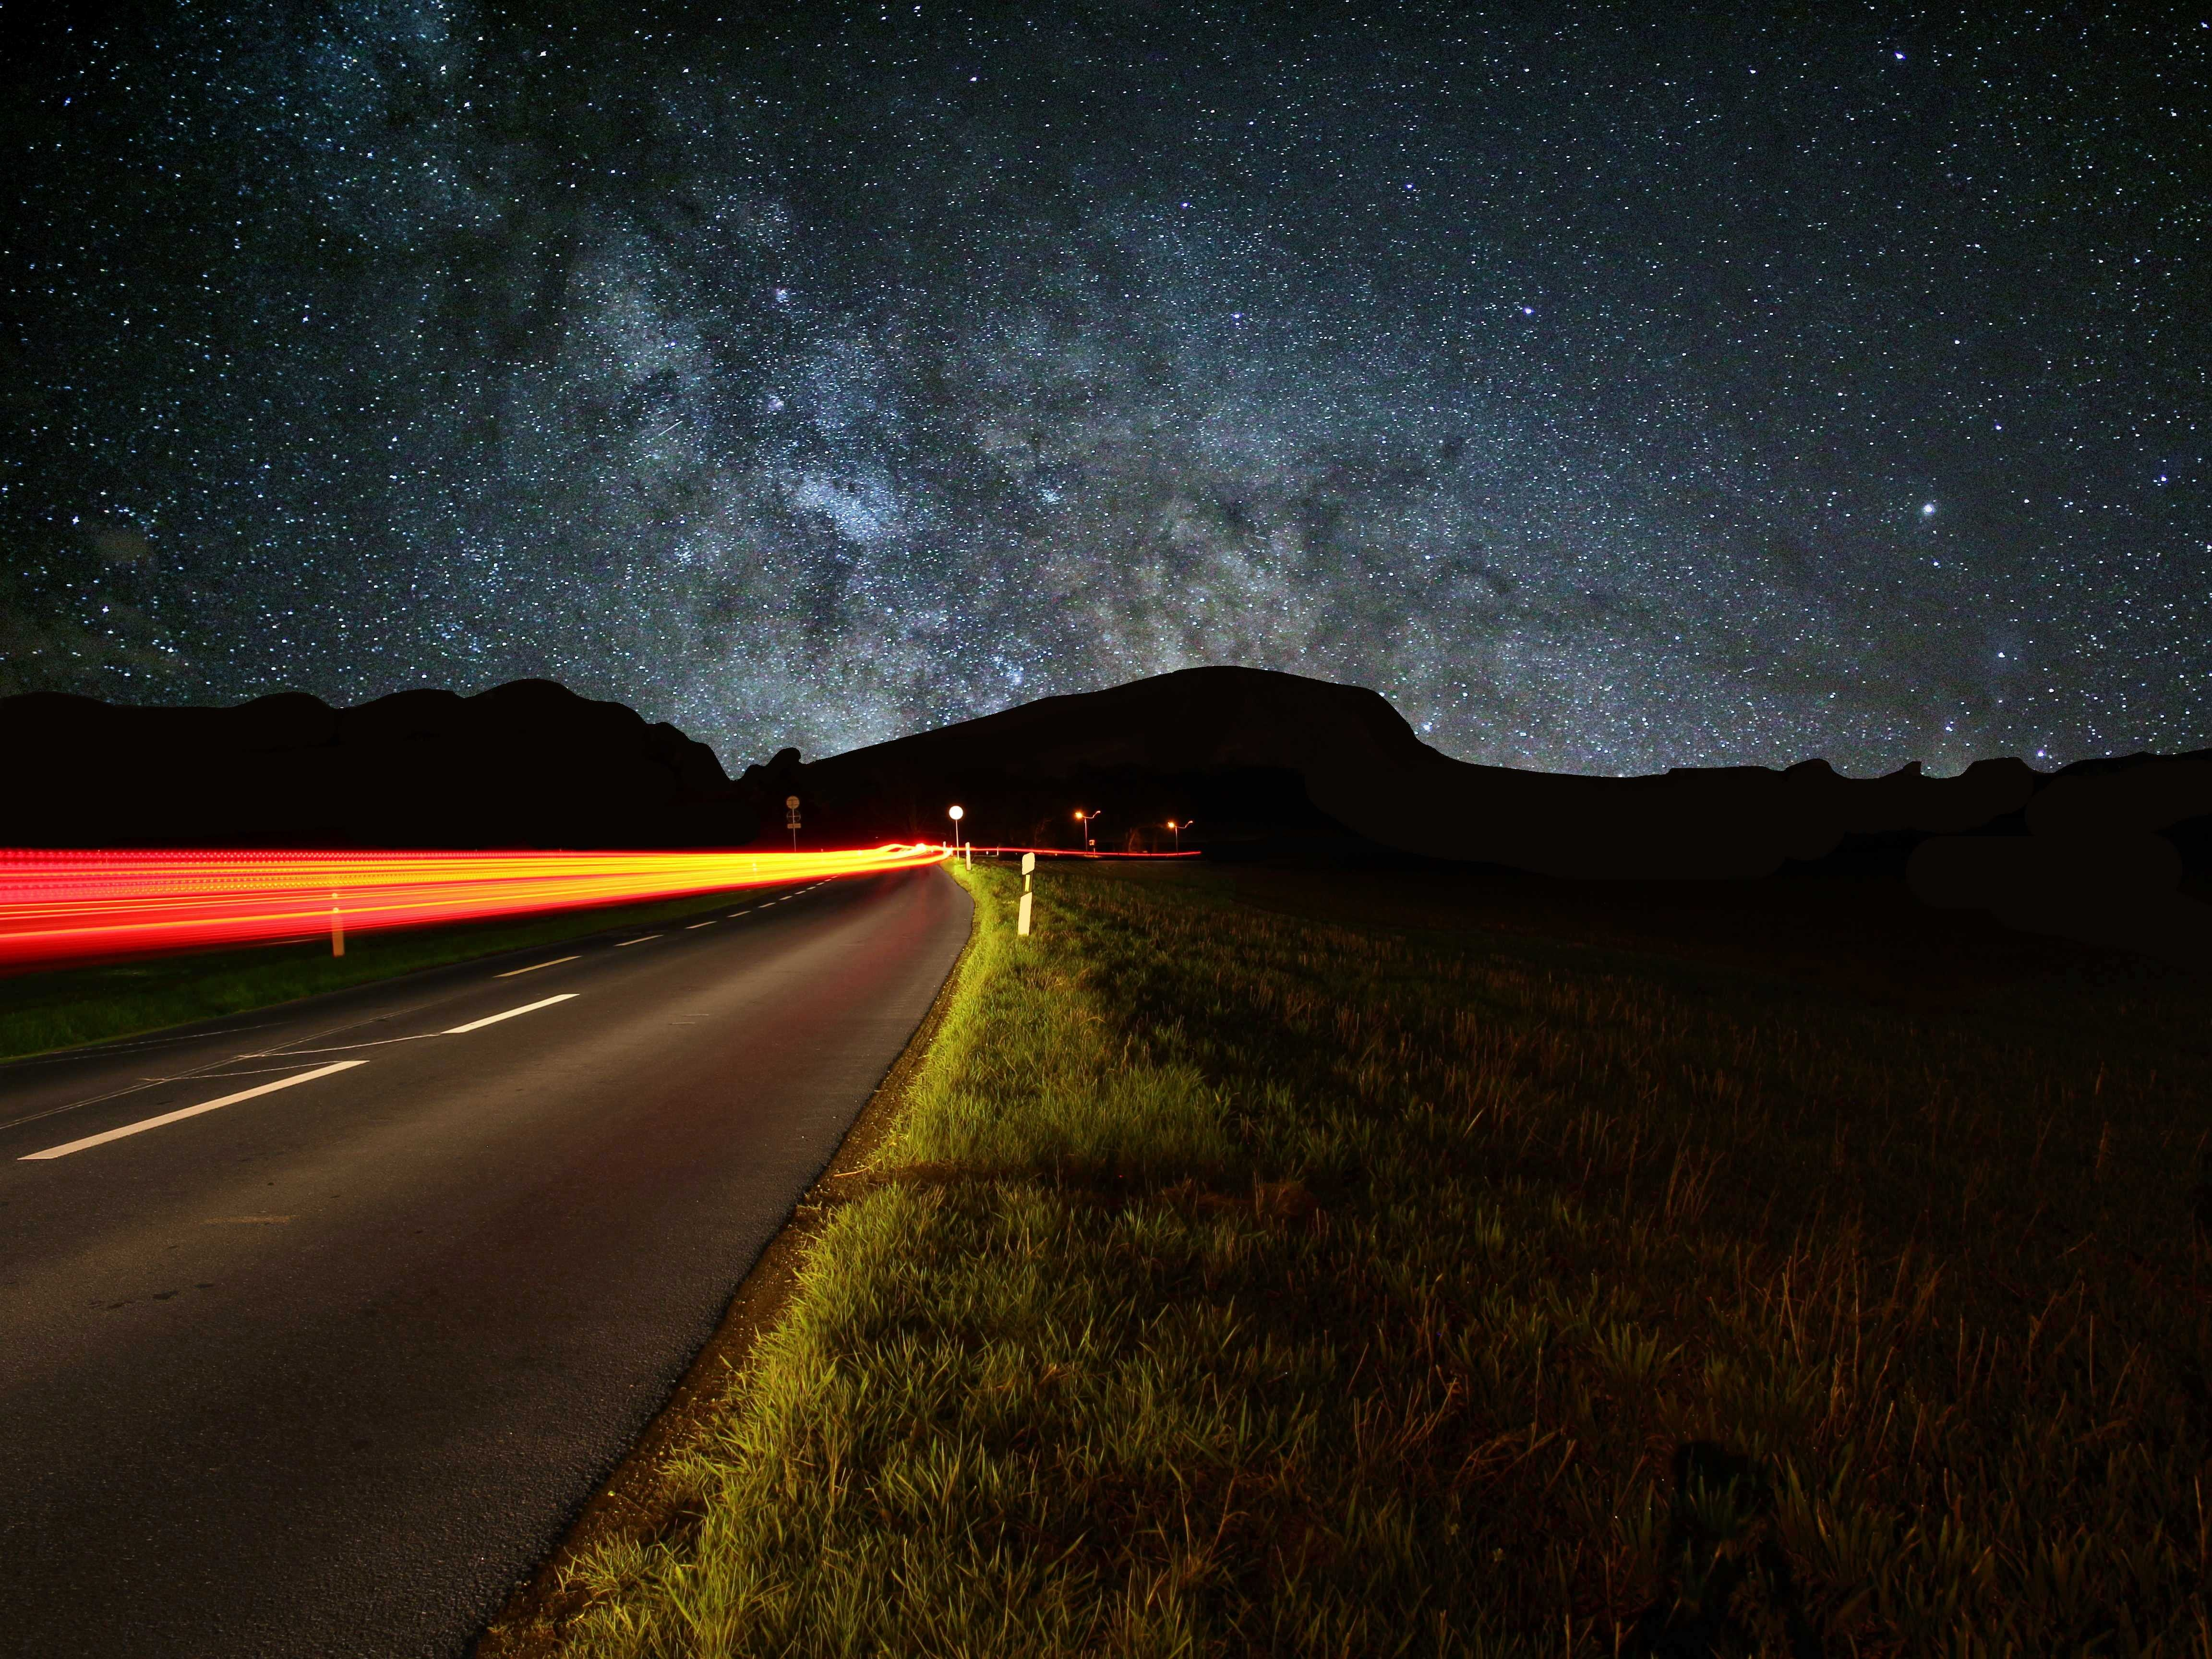 long exposure photography of car